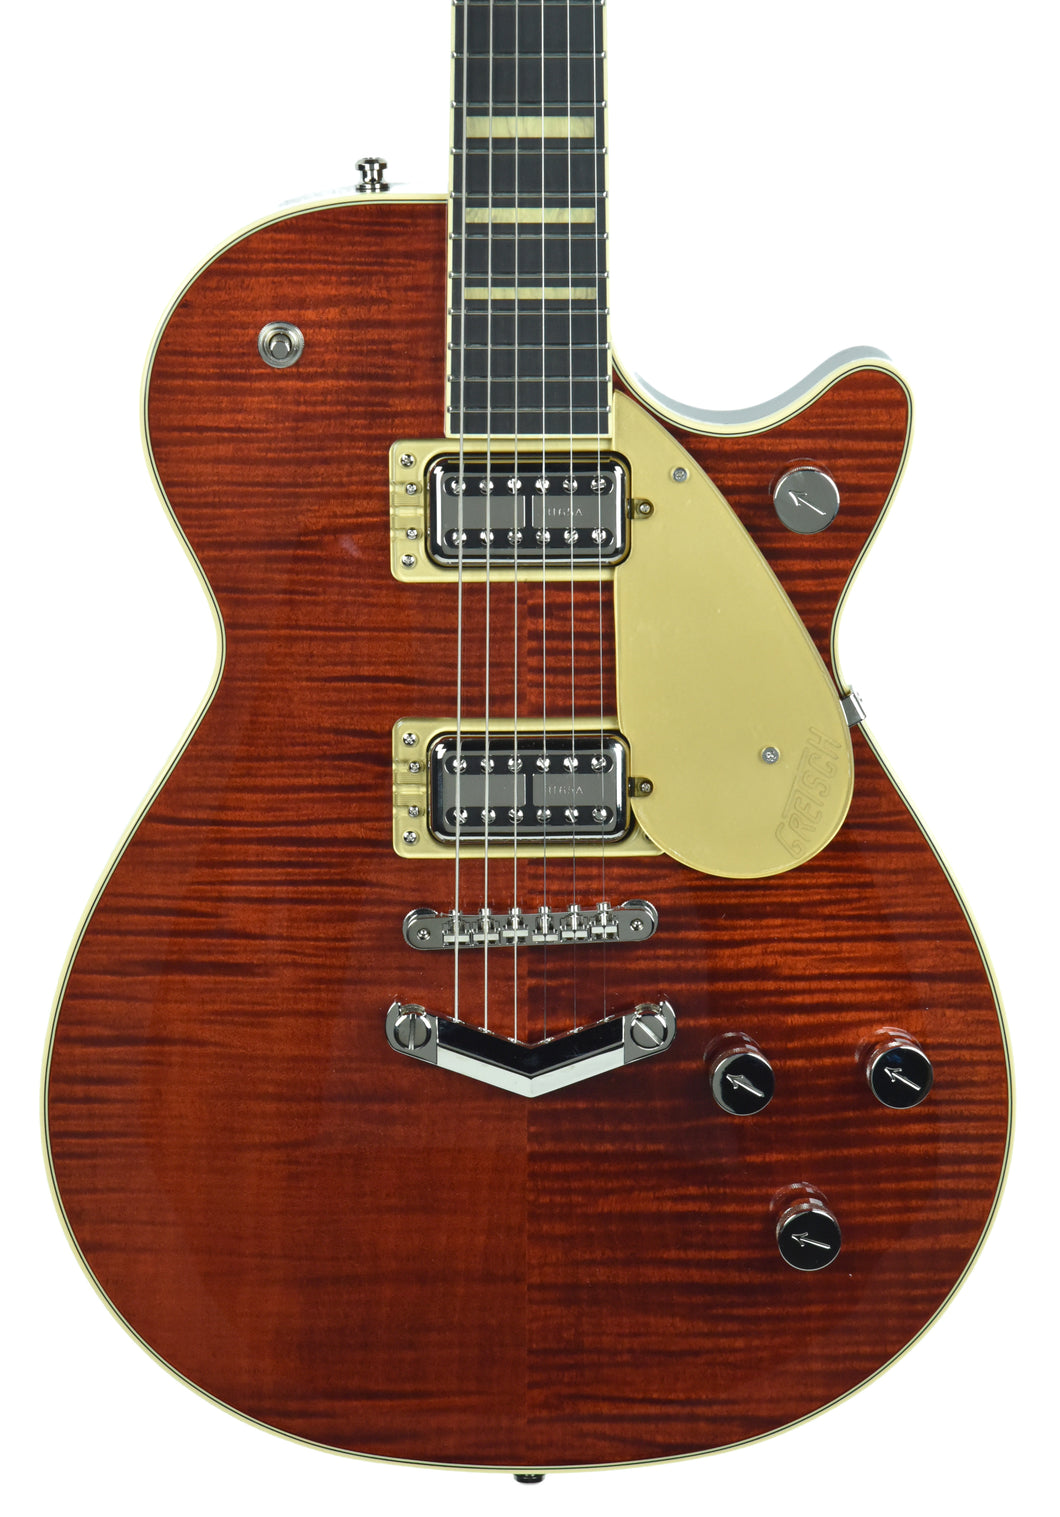 Gretsch G6228FM Players Edition Jet BT w/ V-Stoptail in Flame Maple Bourbon Stain - Front